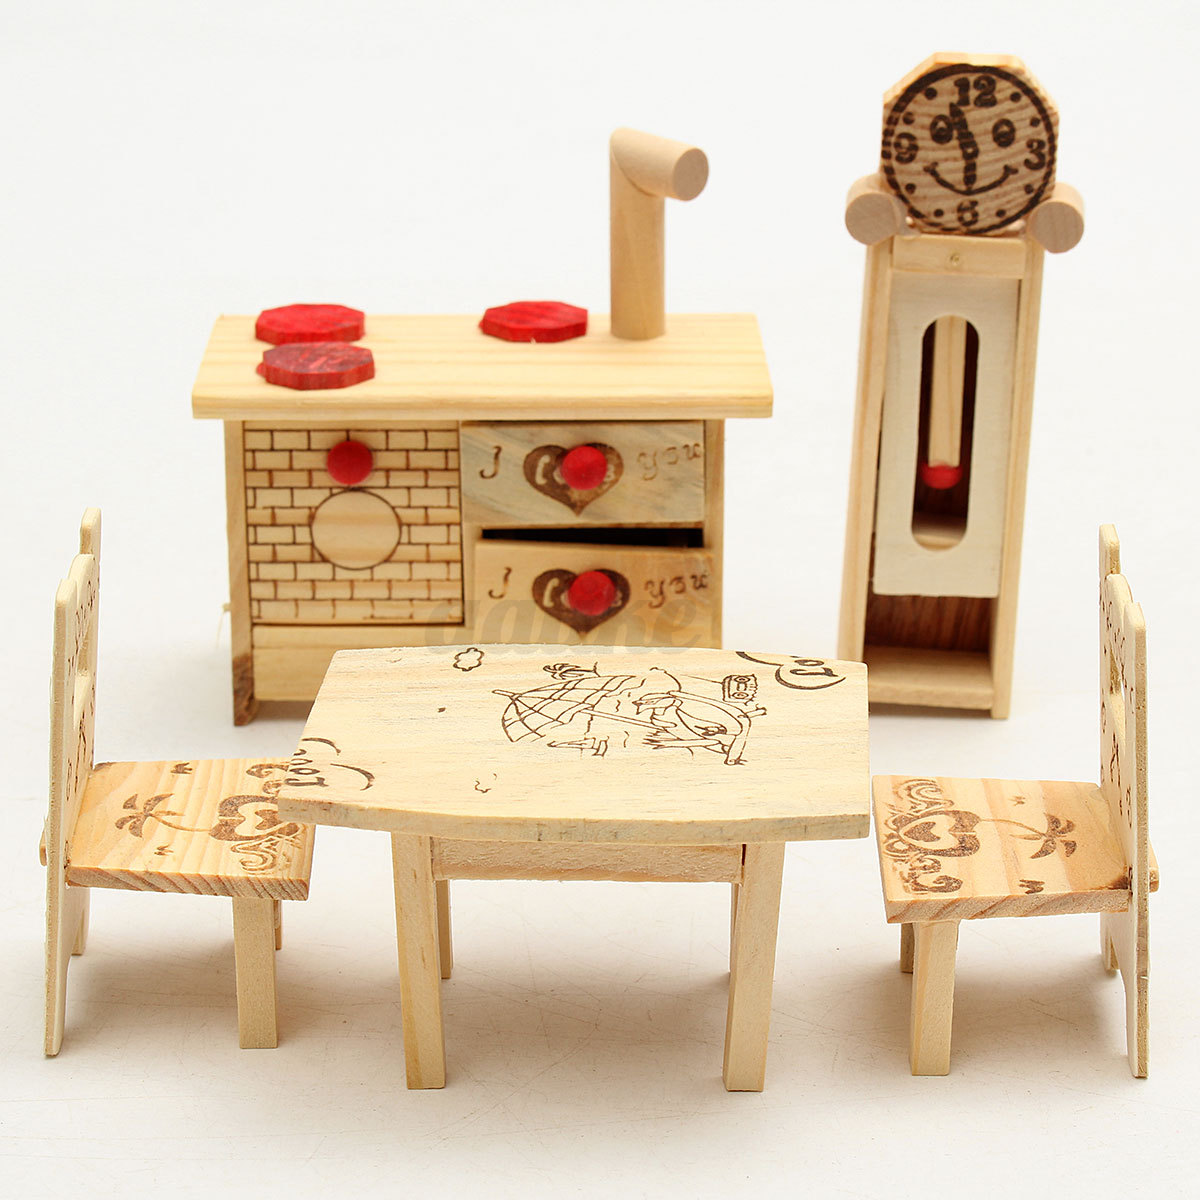 Miniature furniture carved kitchen dining room wooden dollhouse toy set new ebay - Dollhouse dining room furniture ...